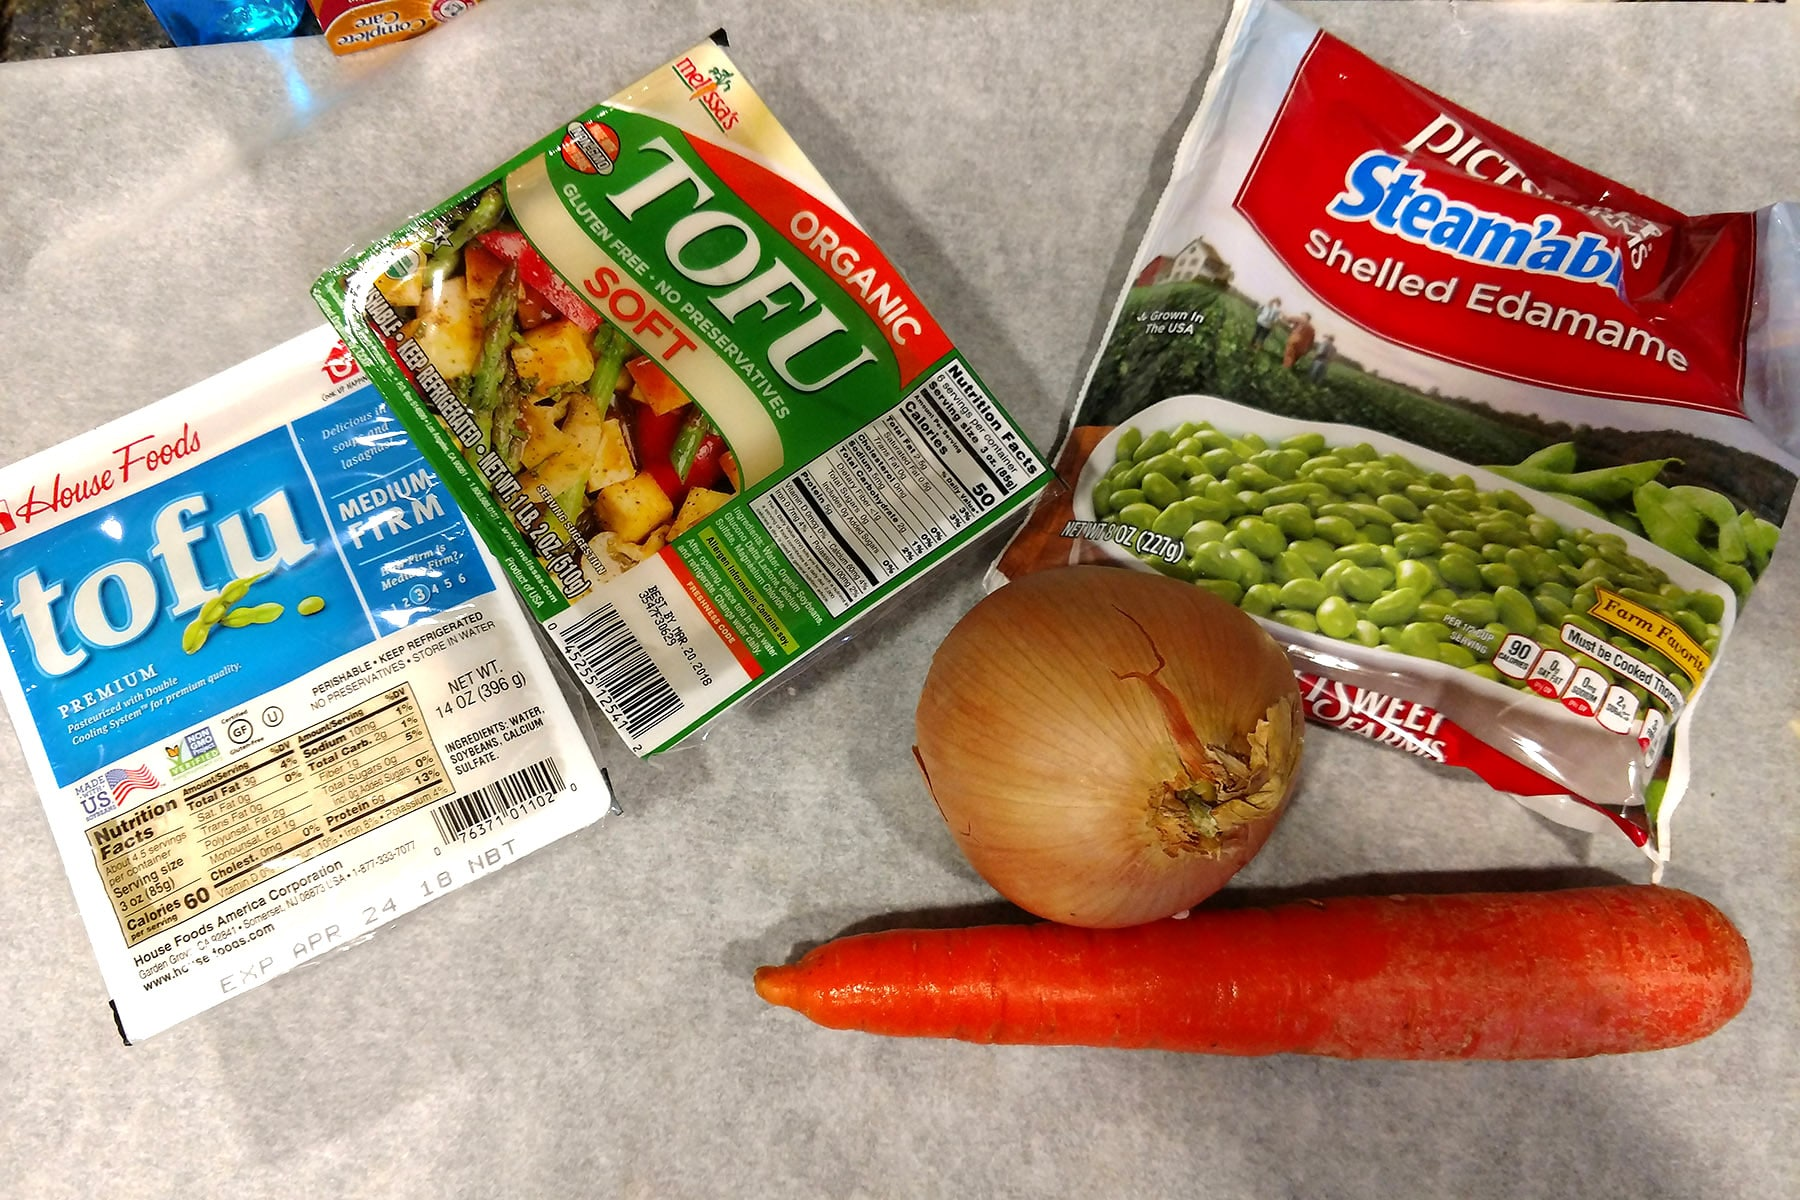 A carrot, an onion, a bag of frozen edamame, and 2 packs of tofu on a countertop.